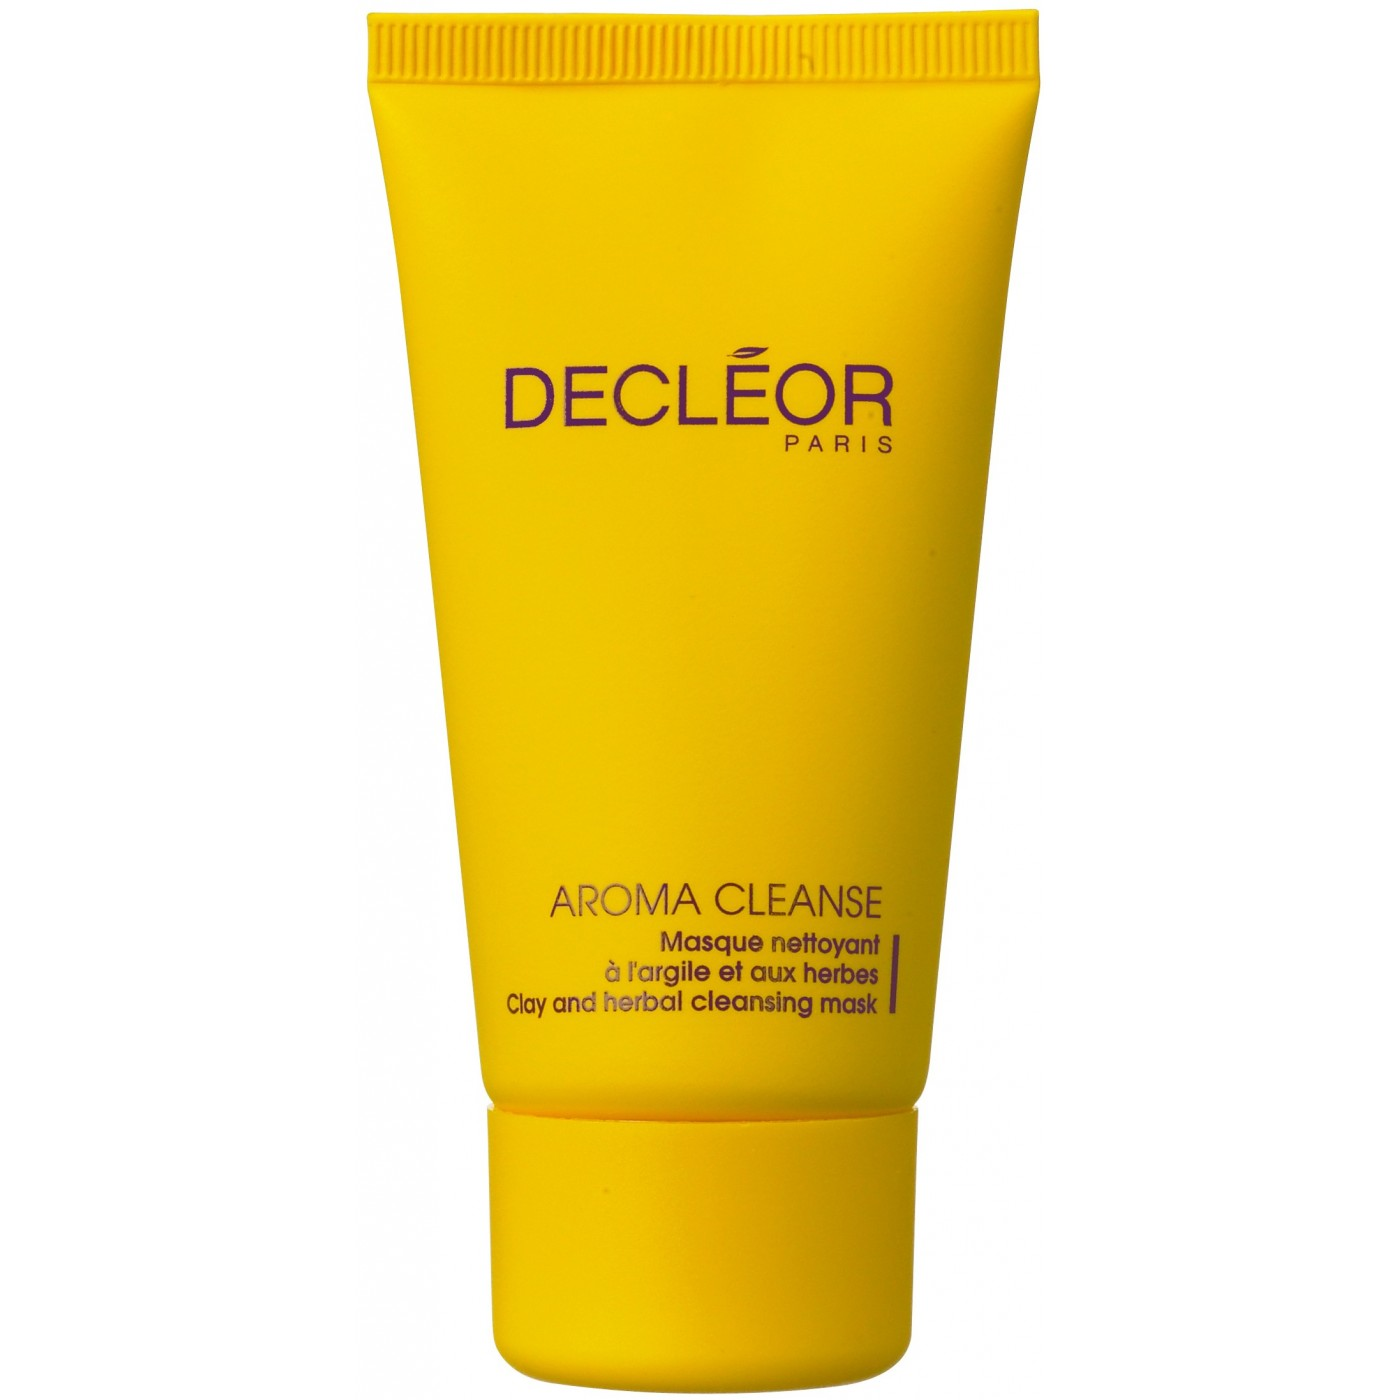 c828bddccc9f Decleor - Aroma Cleanse Clay and Herbal Cleansing Mask 50 ml ...